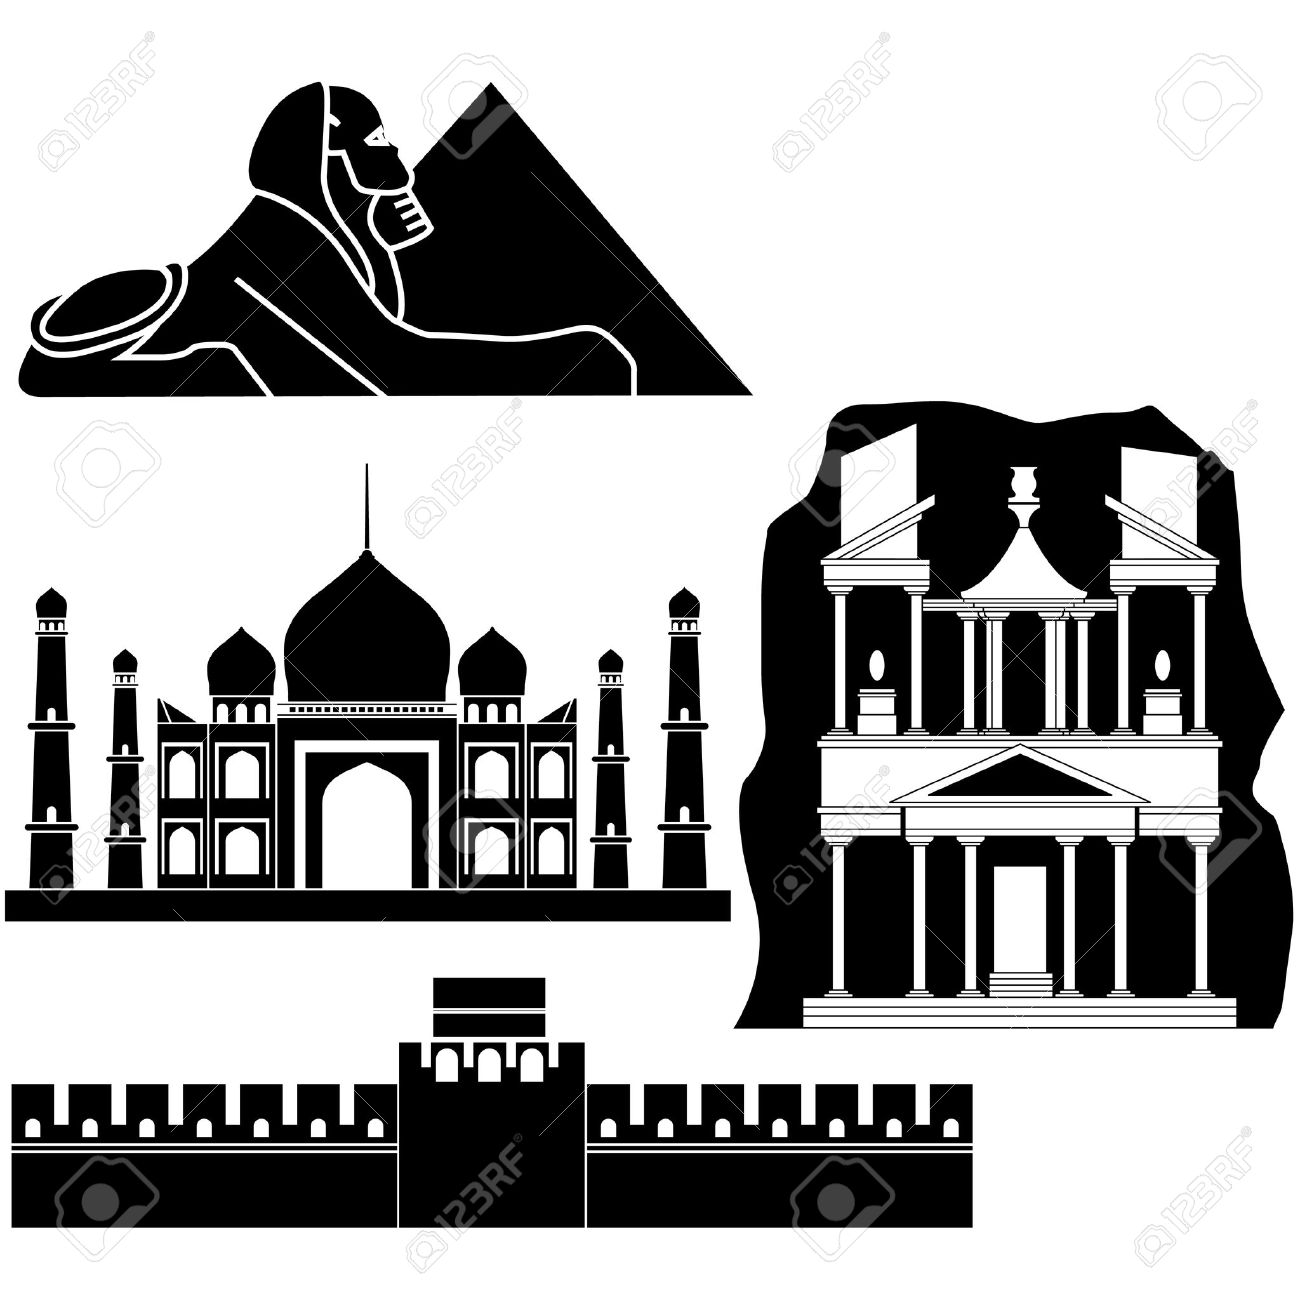 113 Petra Stock Vector Illustration And Royalty Free Petra Clipart.